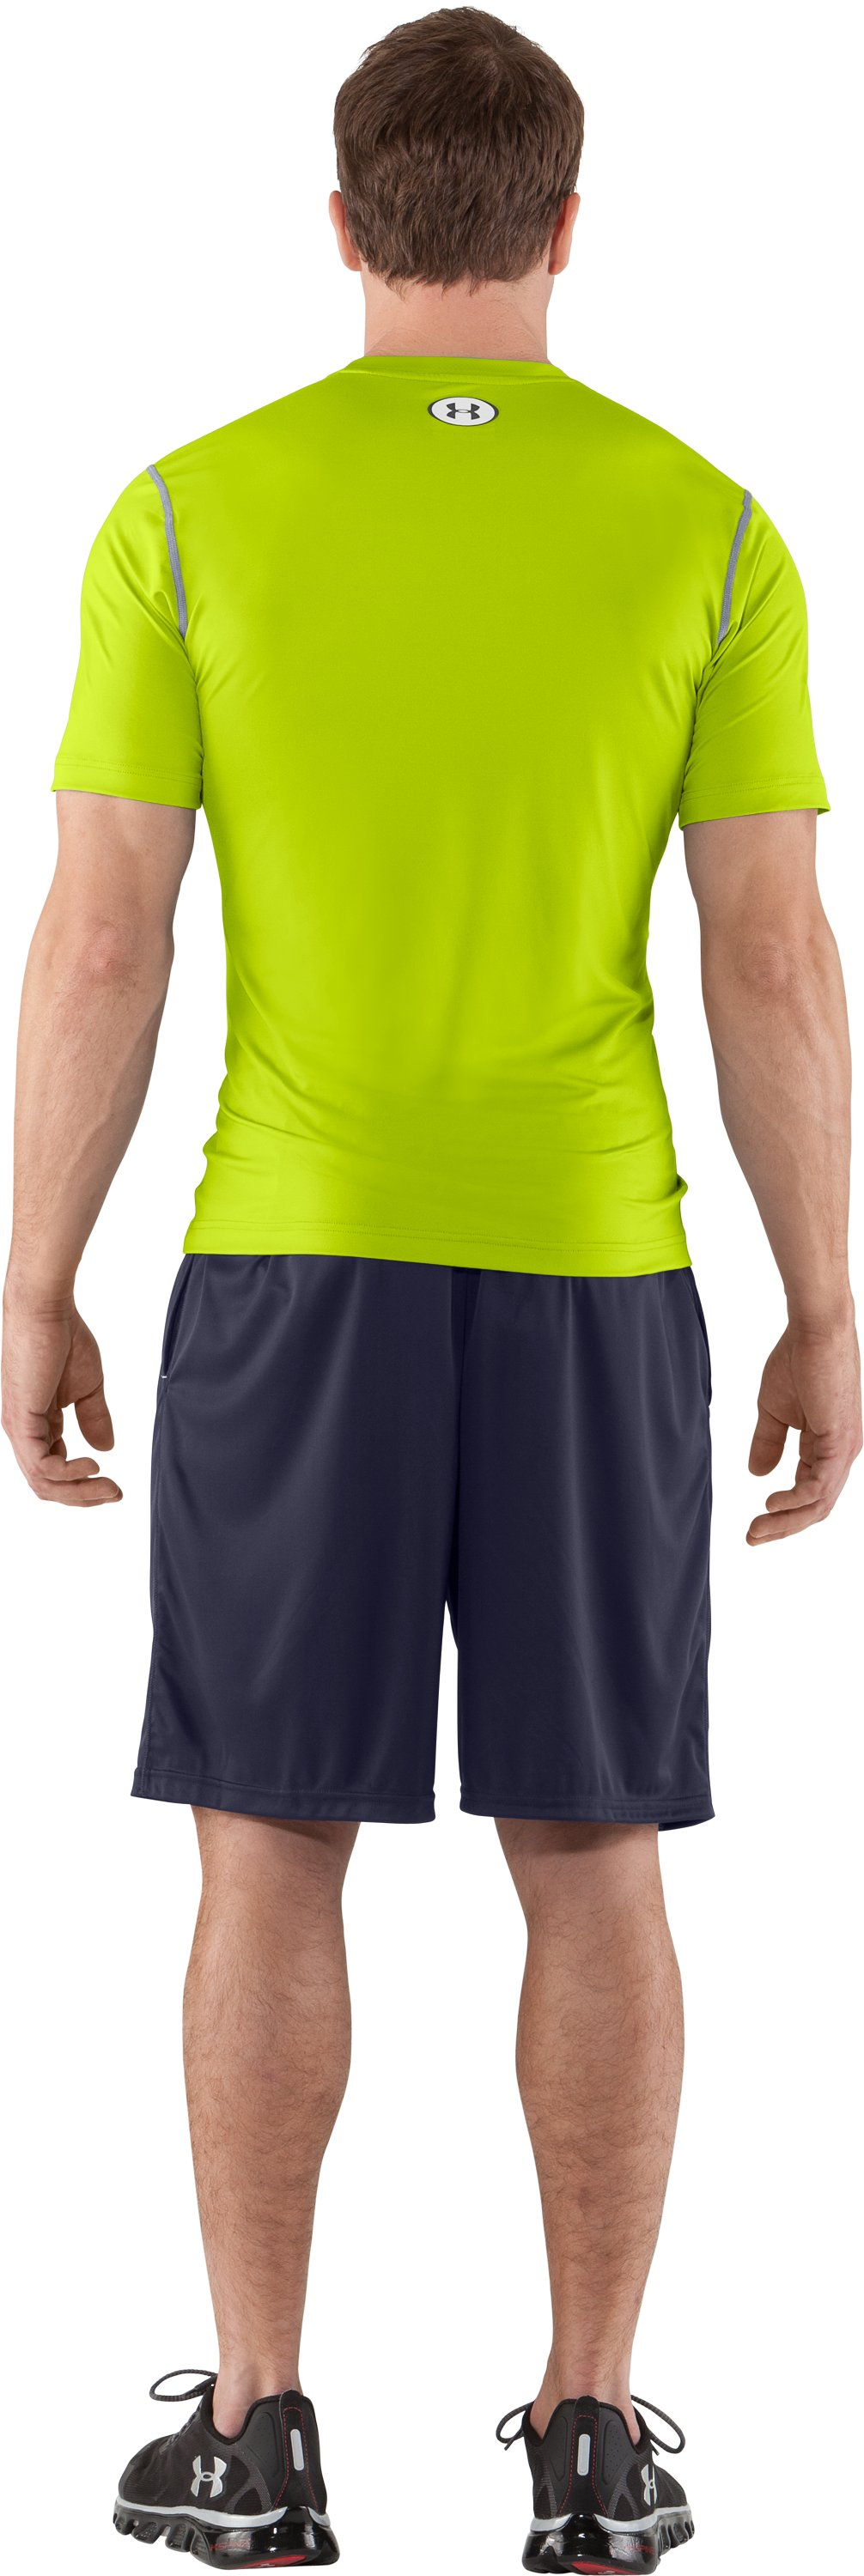 Men's HeatGear® Sonic Fitted Short Sleeve, Velocity, Back